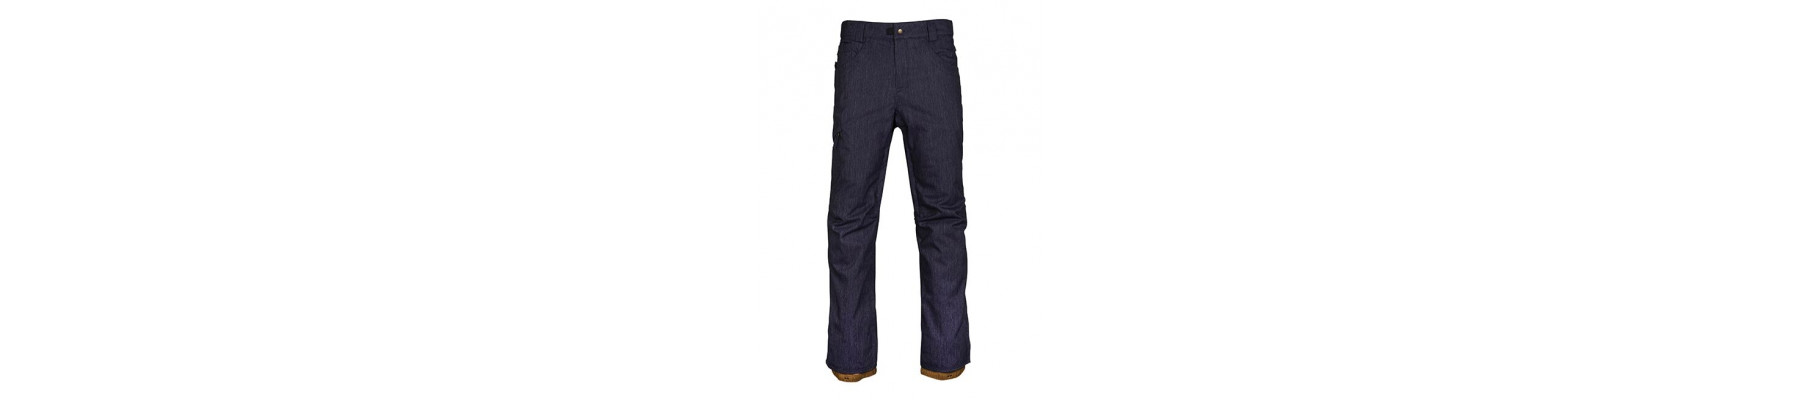 686 Raw Insulated Pant BLUEDENIM 10K/10K/-12'C